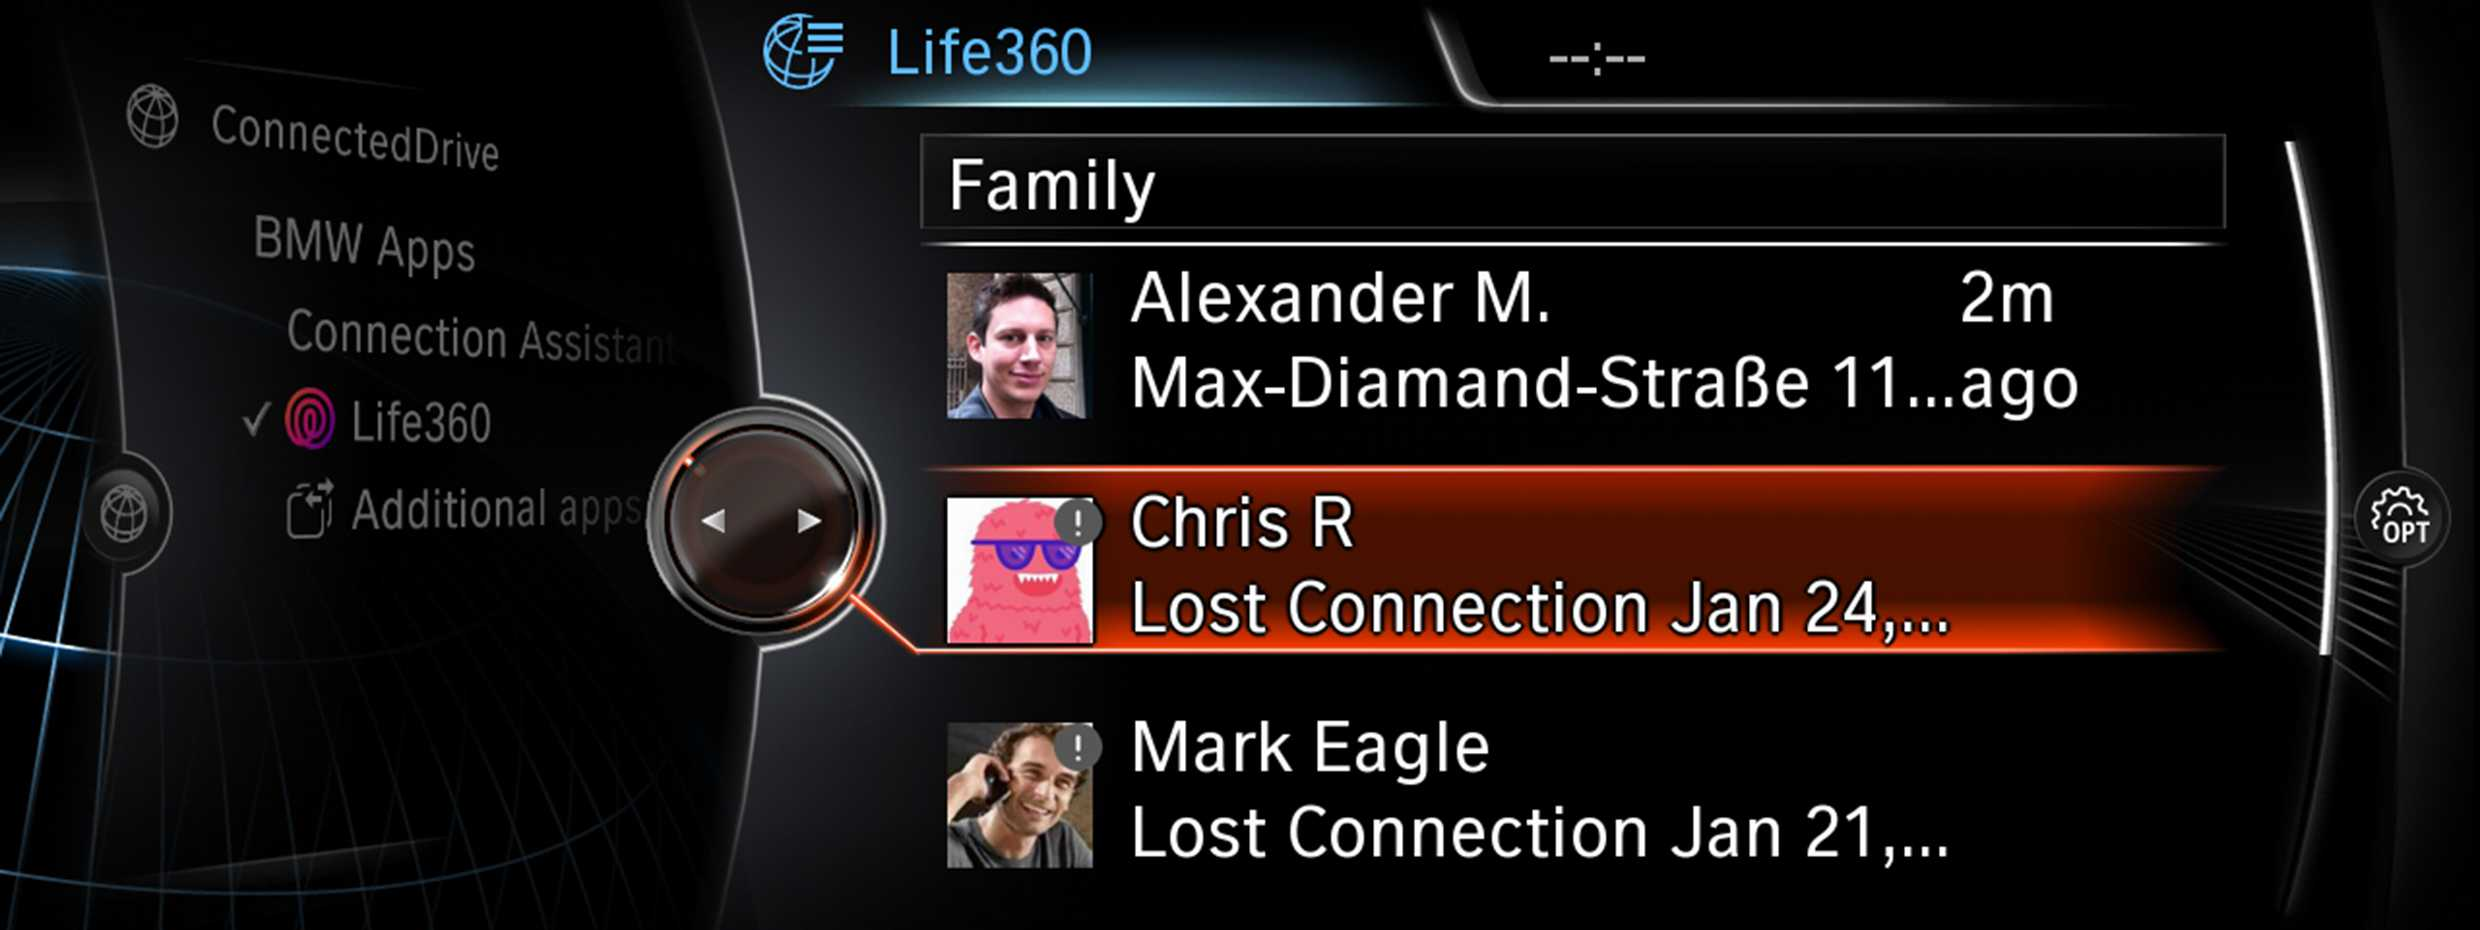 Life360 – The popular family app is now available in BMW and